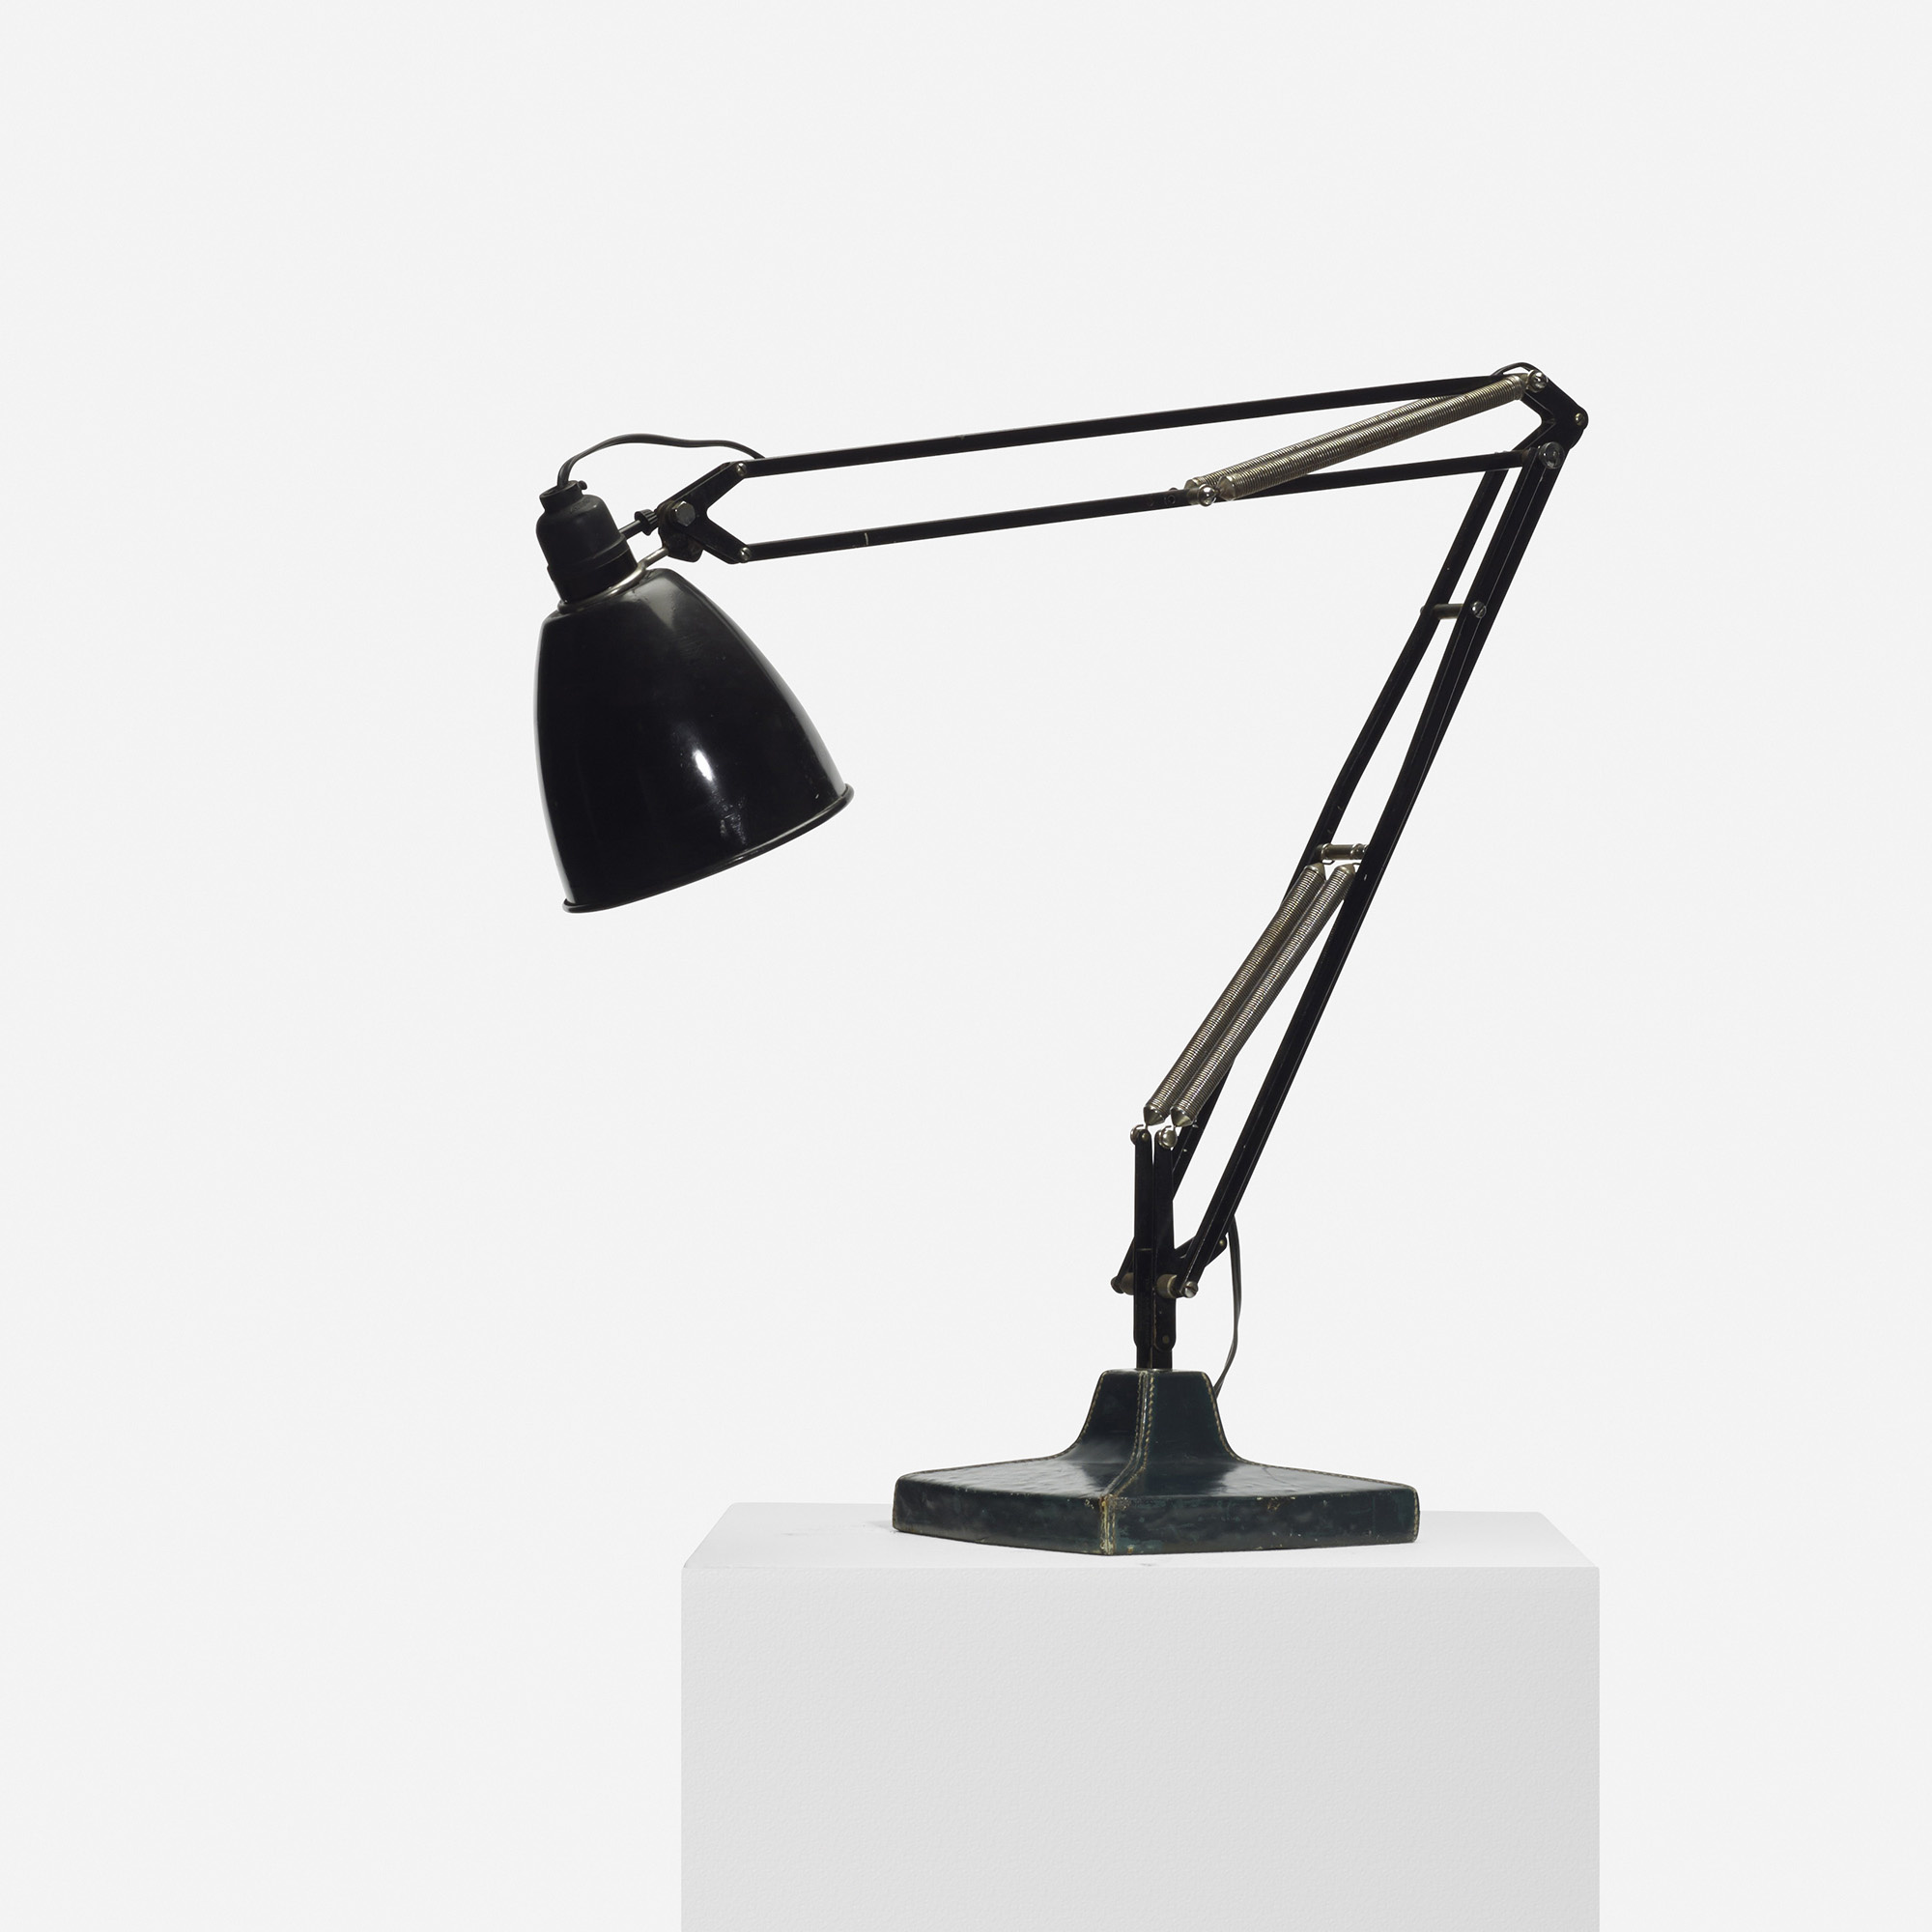 designer product rw anglepoise beaney booklet sam lamp